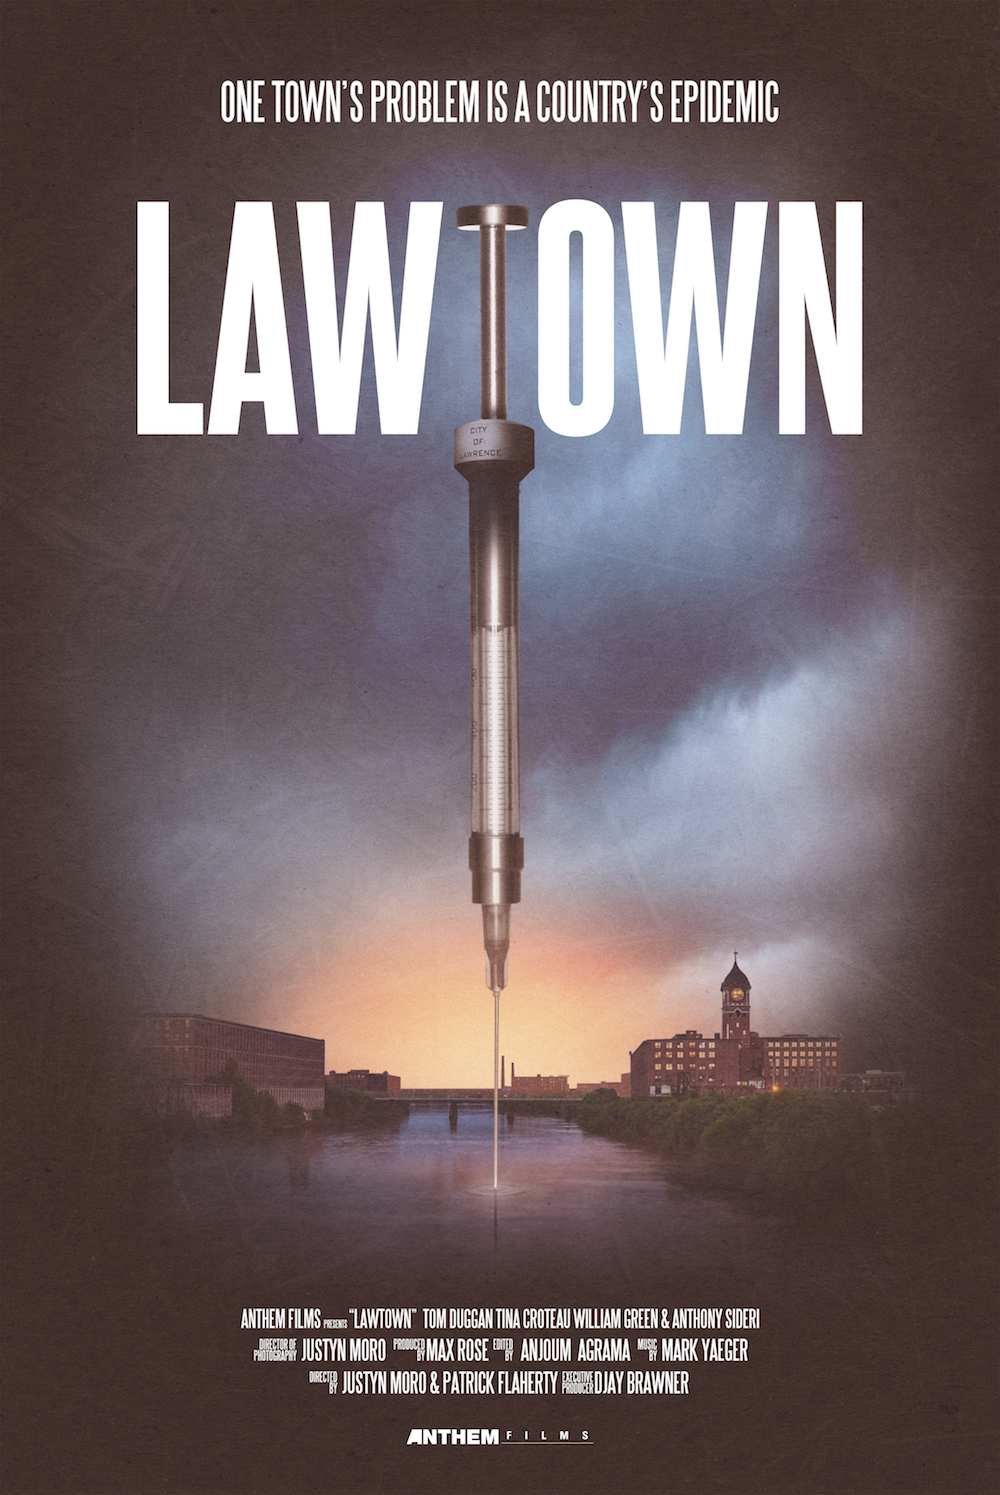 LAWTOWN - Lawtown explores the country's current opioids epidemic by focusing on the community members of Lawrence, Massachusetts, a blue collar town and gateway city at the heart of the crisis. Lawerence struggles to find balance between a corrupt government and the cartels. The story of Lawtown focuses on four people affected by the opioid problem and how they are working to clean up the city, for better or for worse.Directed By Justyn Moro & Patrick FlahertyProduced By Max RoseProduced By Justyn Moro, Patrick Flaherty, and Nicole SwedlowExecutive Producer DJay BrawnerDirector of Photography Justyn MoroEdited By Anjoum AgramaOriginal Score By Mark Yaeger